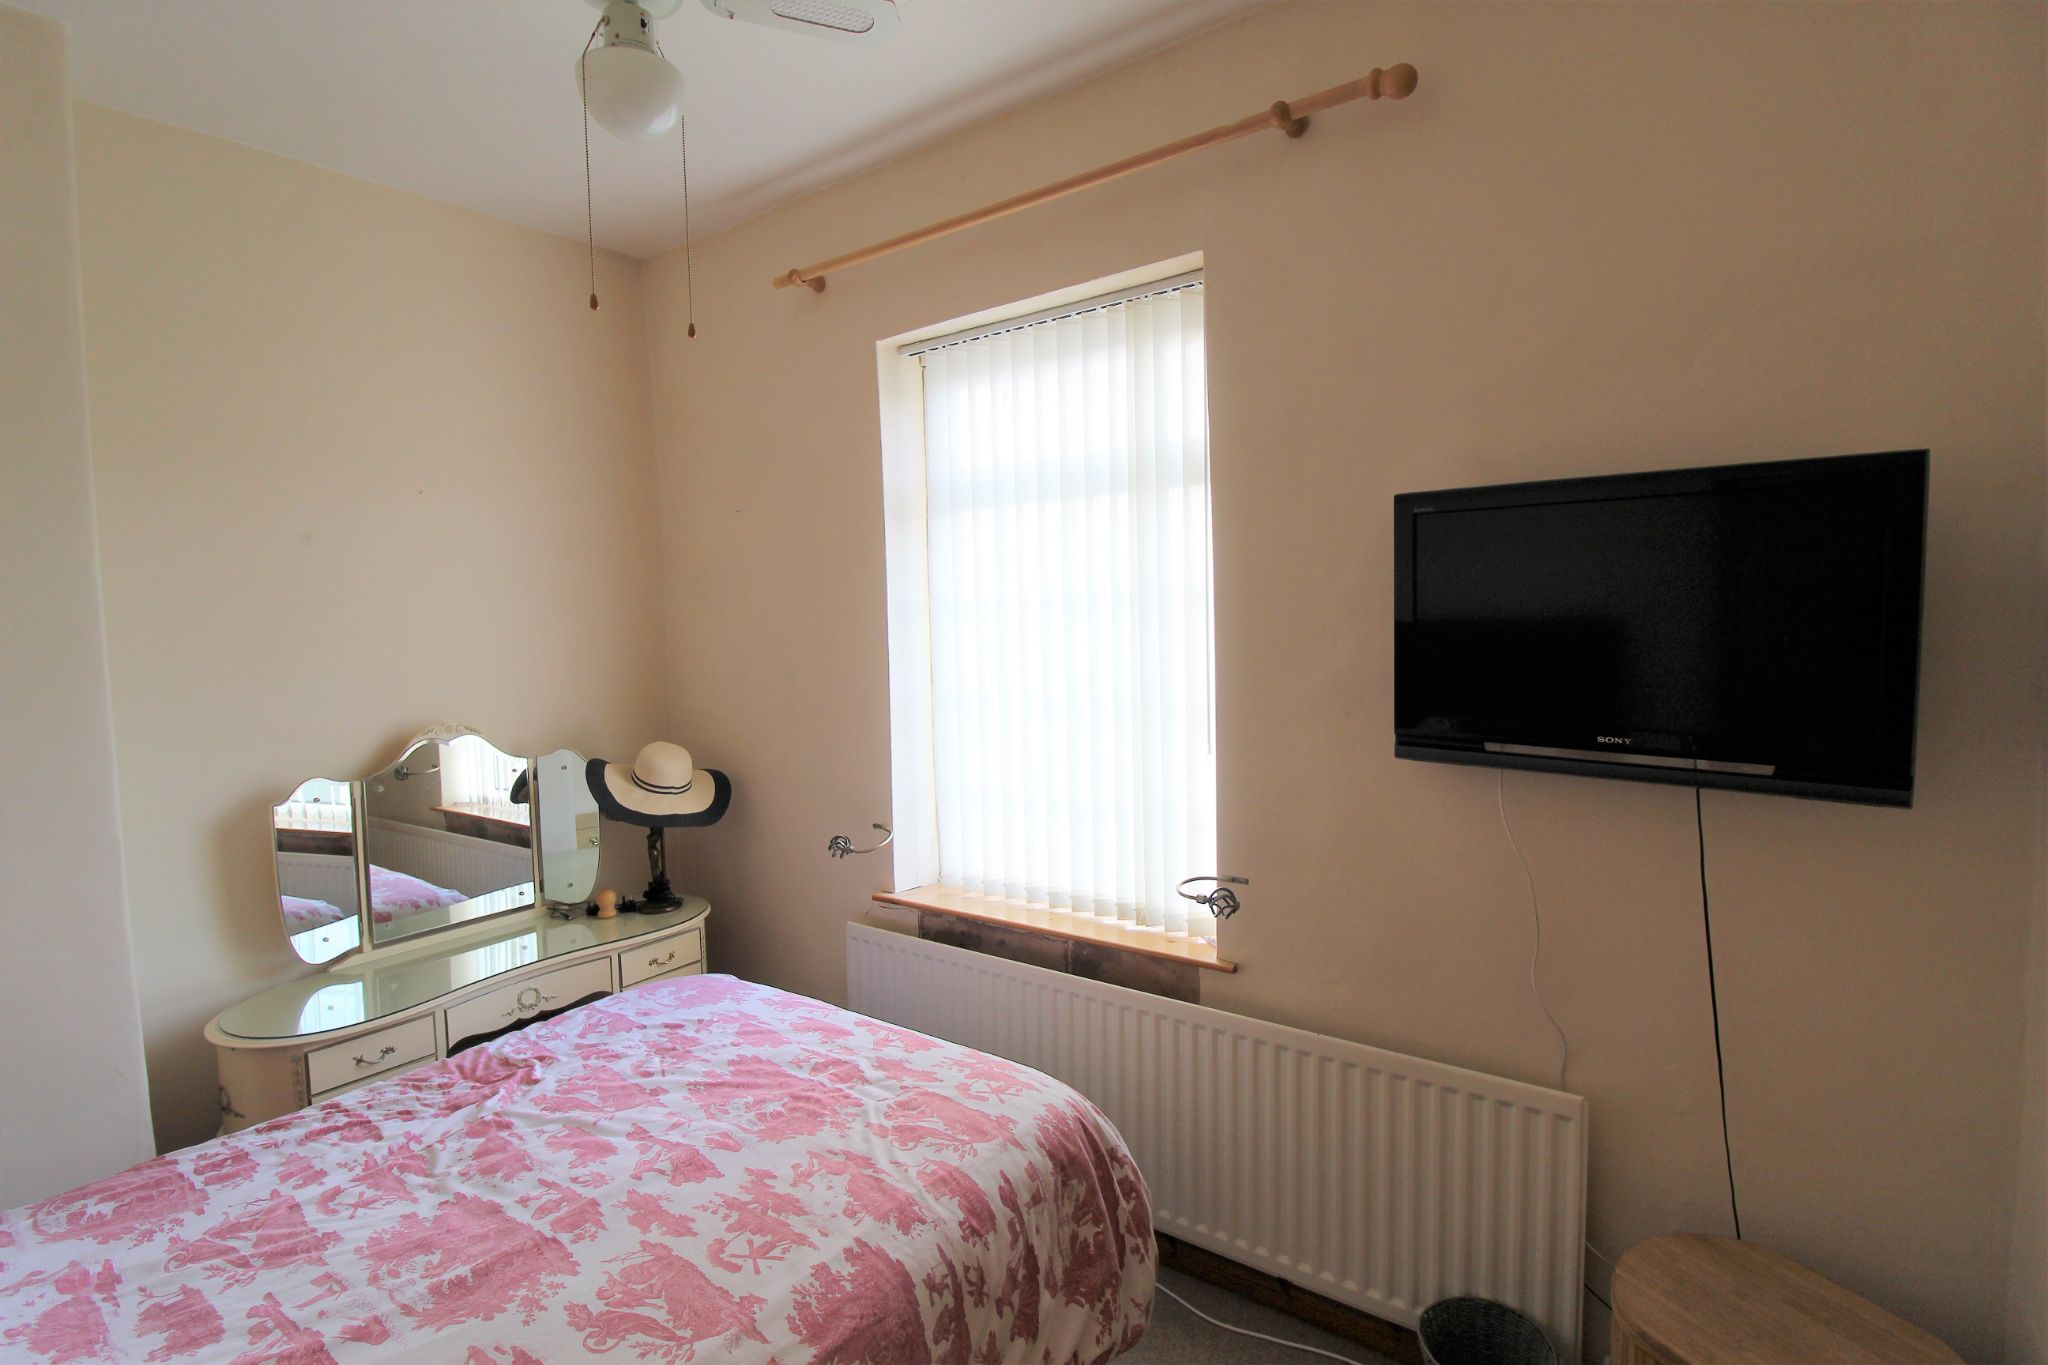 2 bedroom cottage house To Let in Wakefield - Bedroom 1